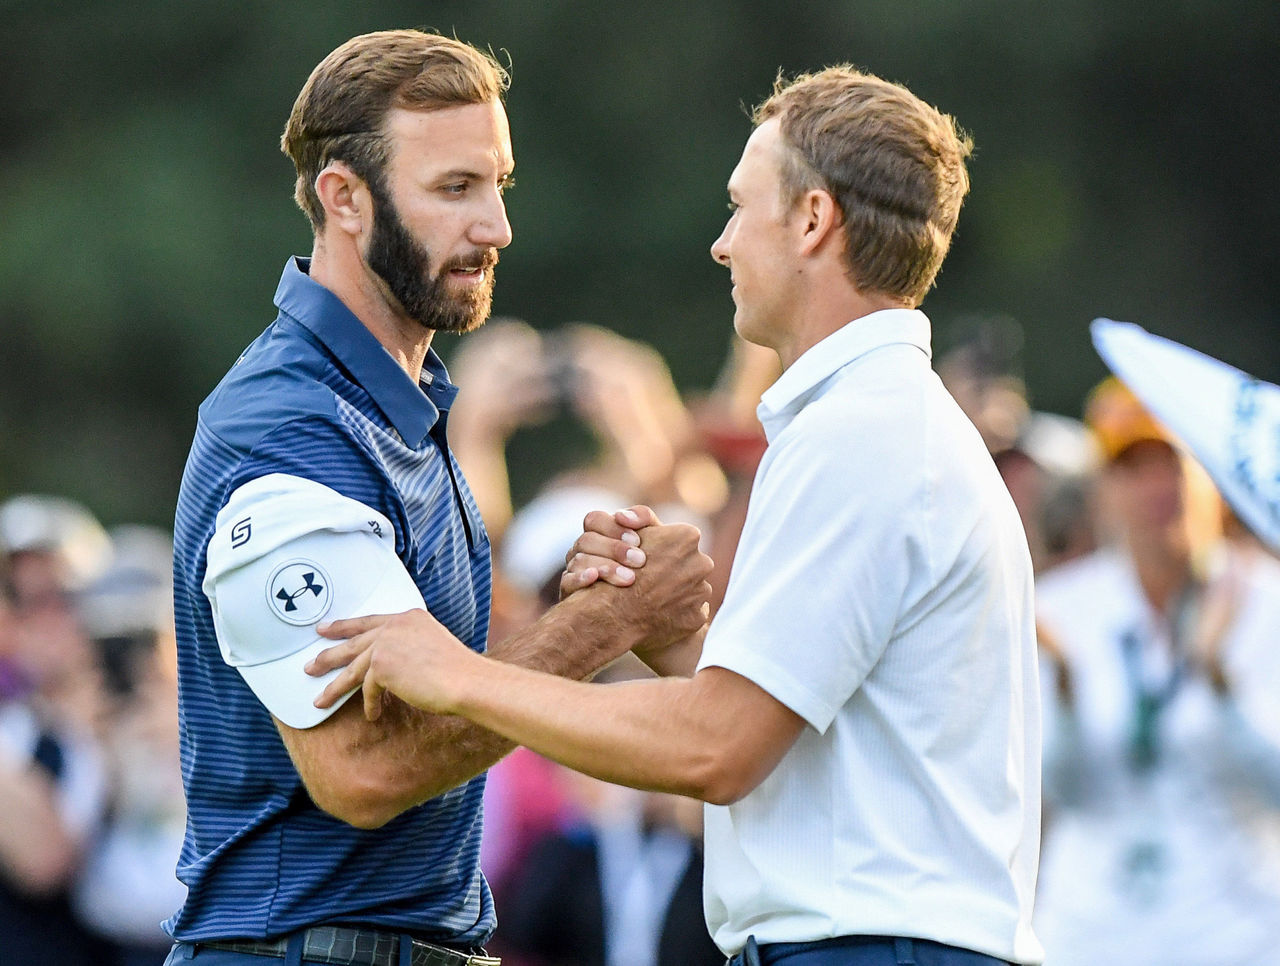 Cropped 2017 08 28t025528z 910175439 nocid rtrmadp 3 pga the northern trust final round